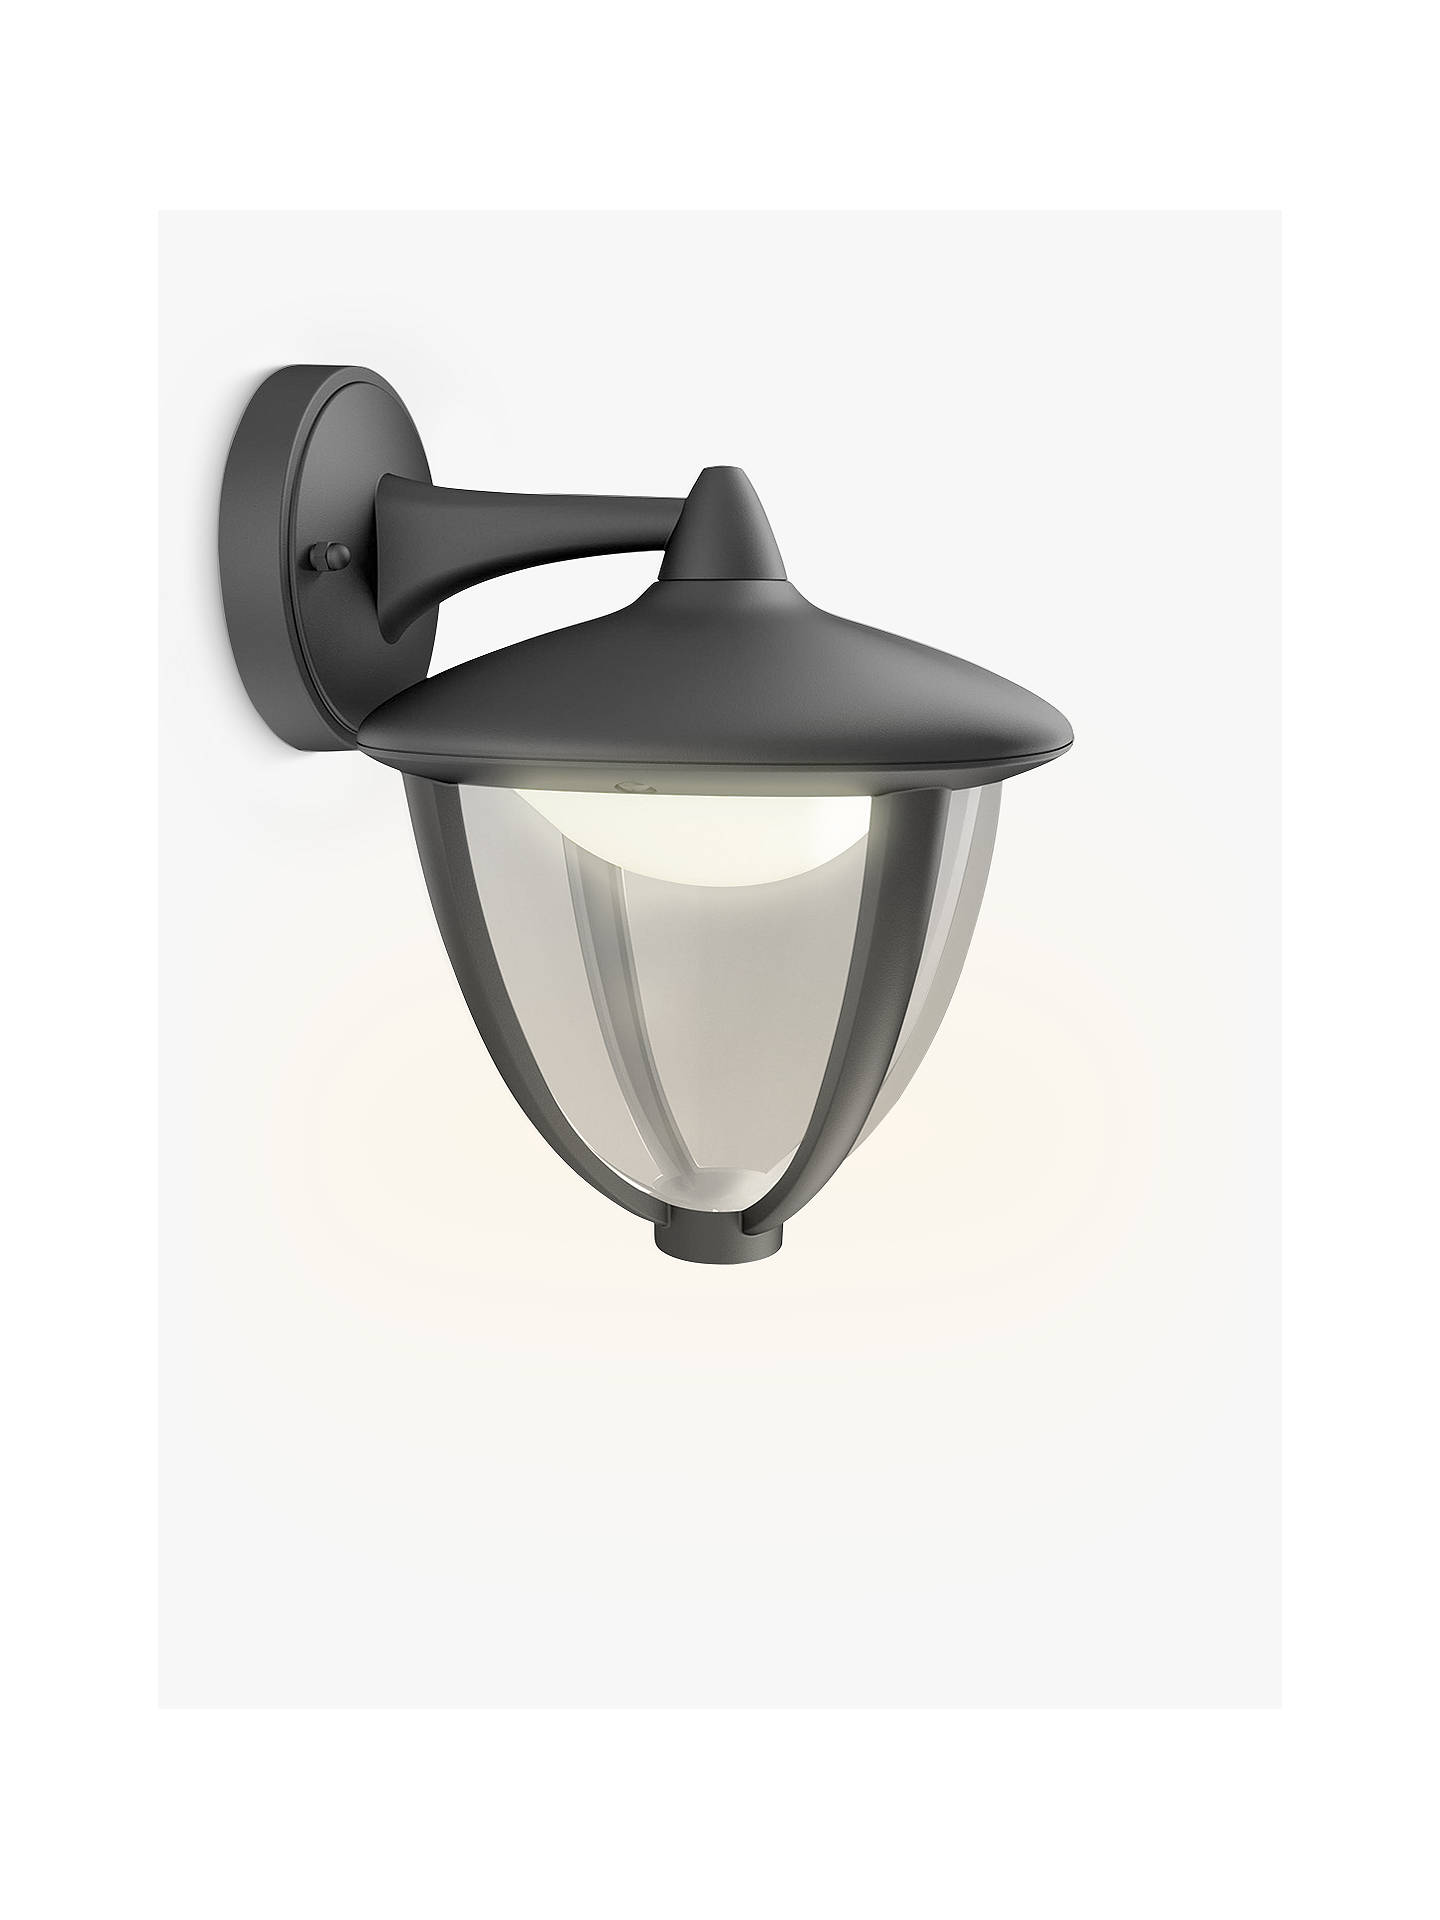 Philips Robin Led Outdoor Wall Lantern Black Online At Johnlewis